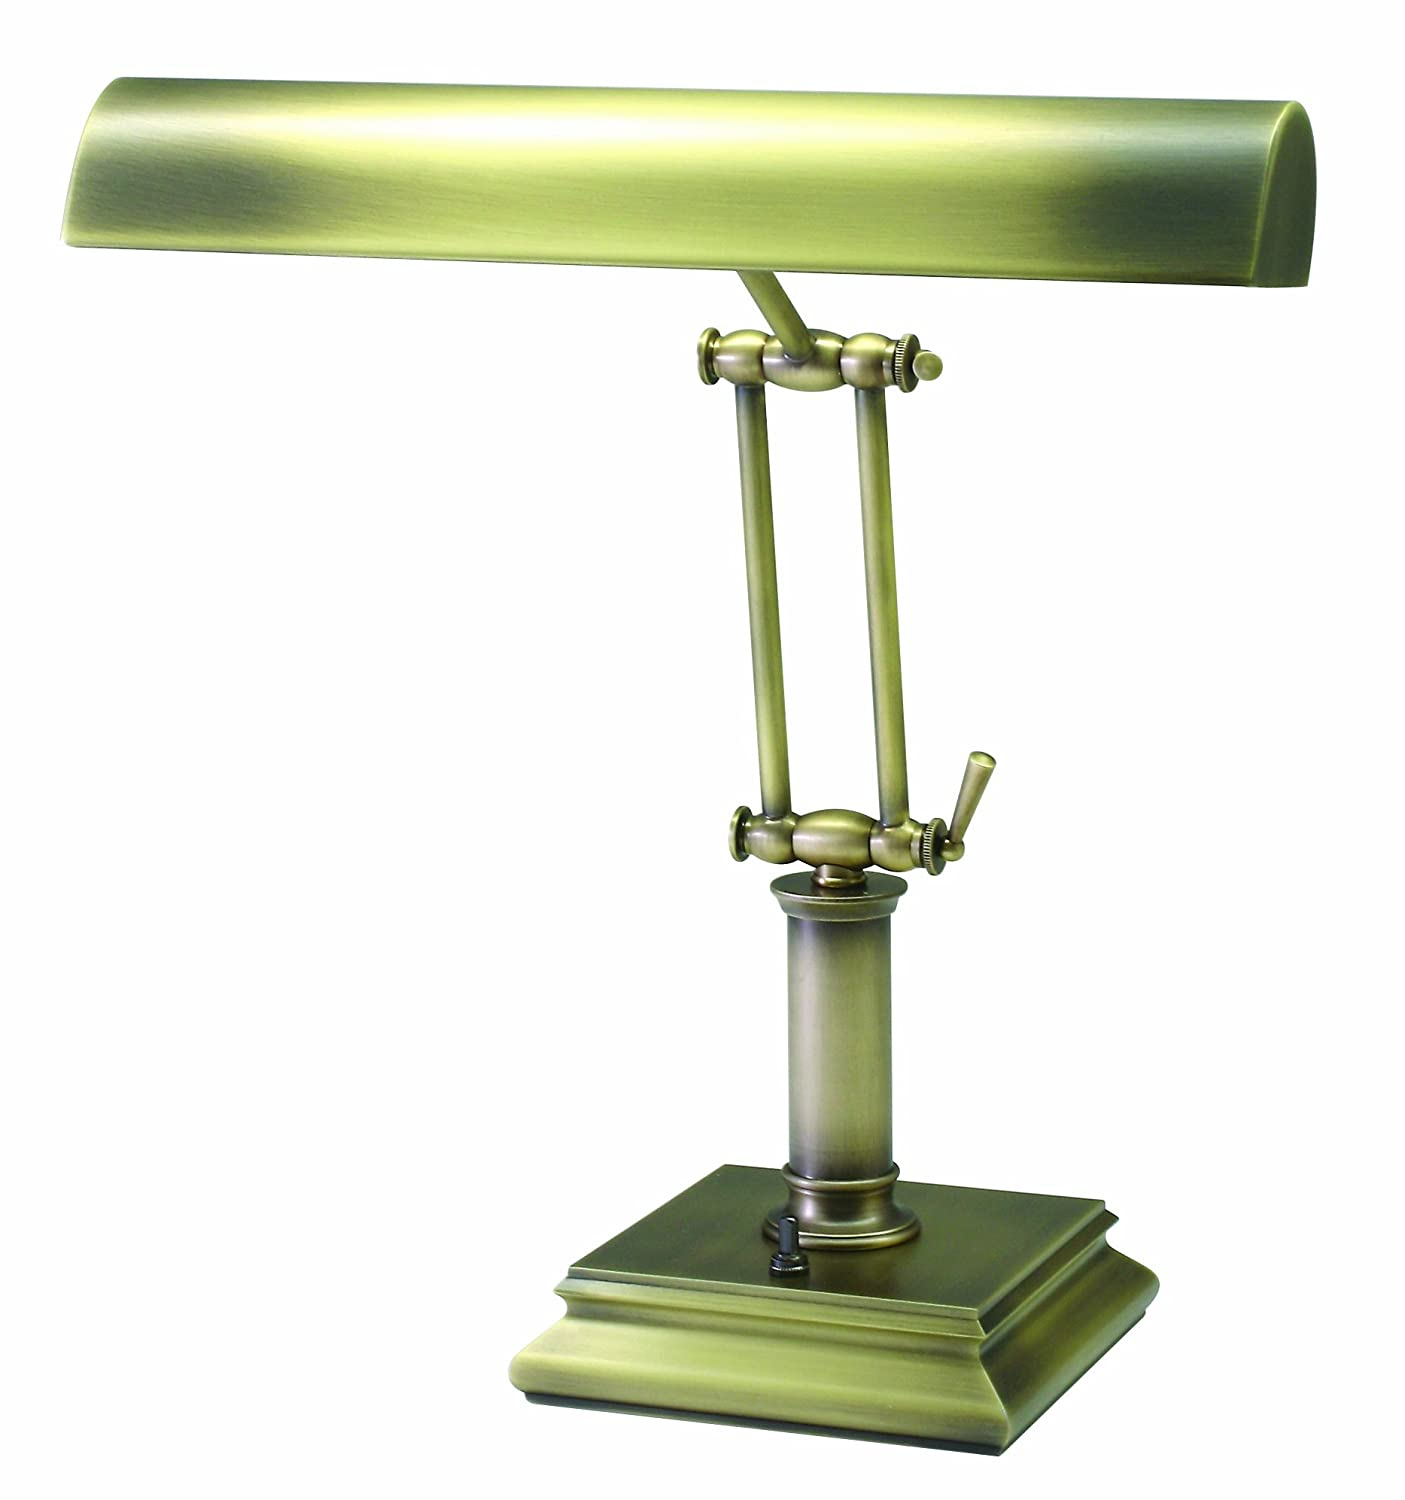 Contemporary Desk Lamps House Of Troy P14 201 14 Inch Portable Desk Piano  Lamp Polished